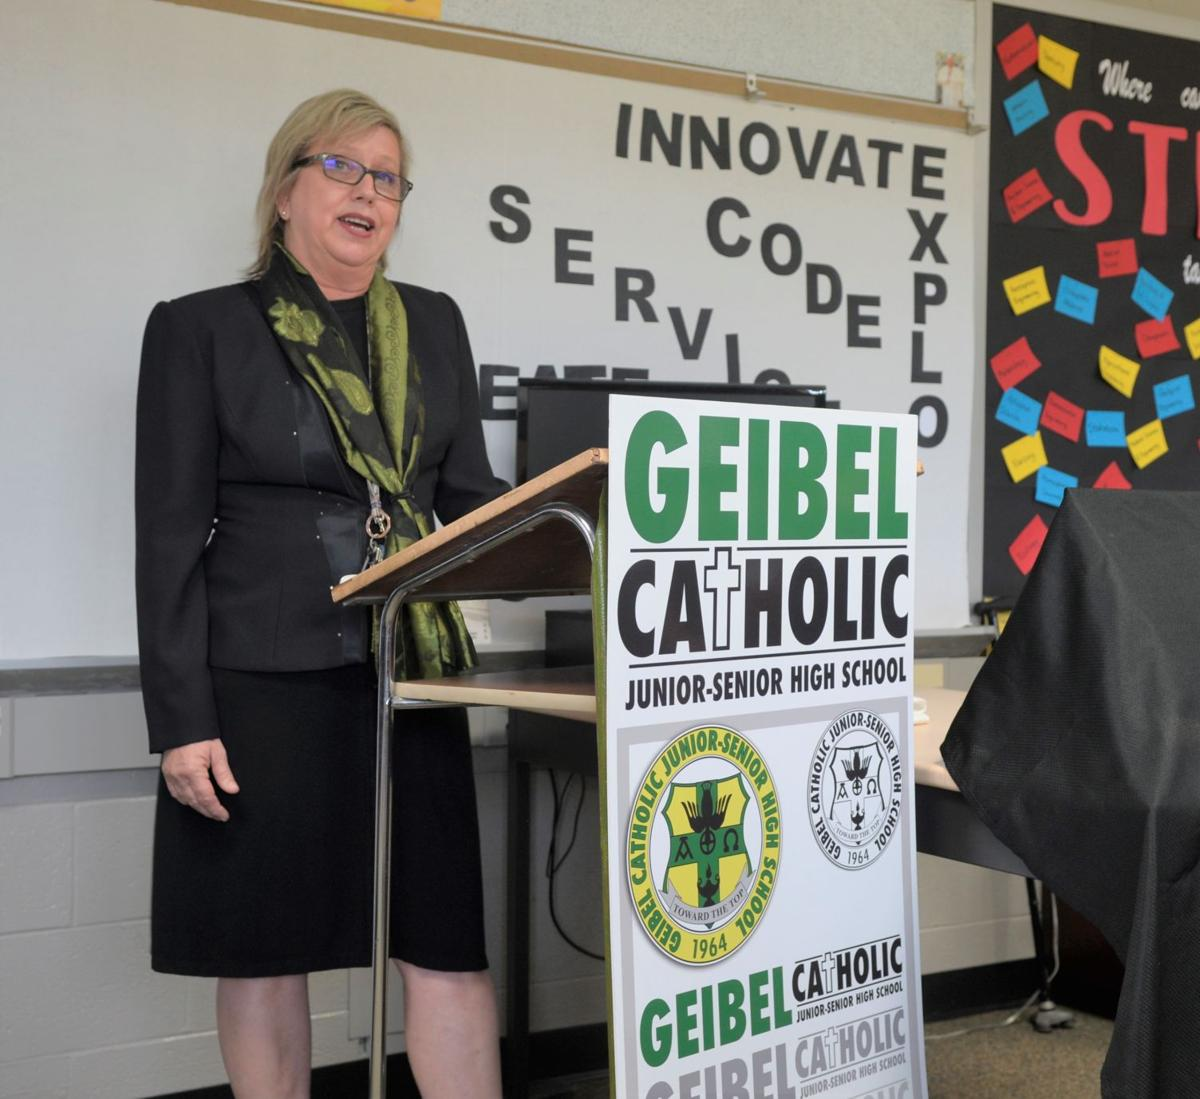 Diocese of Greensburg invests in Geibel rebrand to boost enrollment